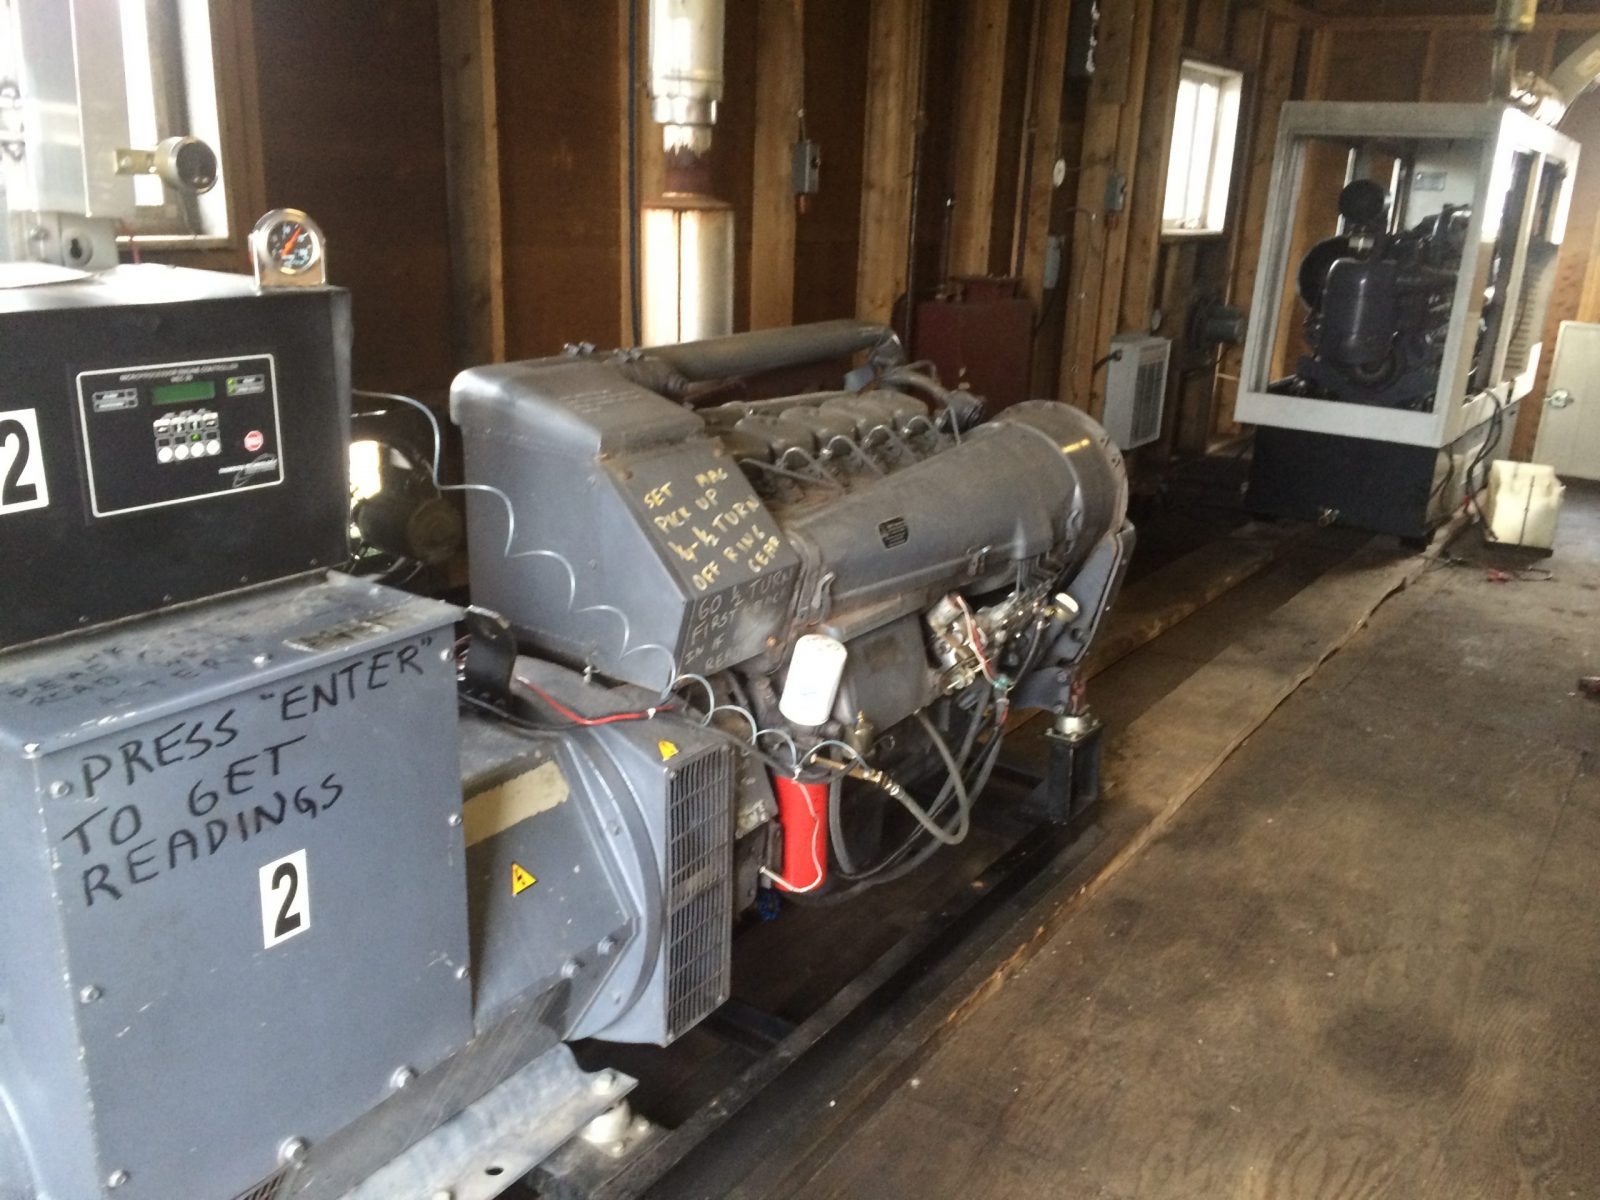 Two Generators For Power